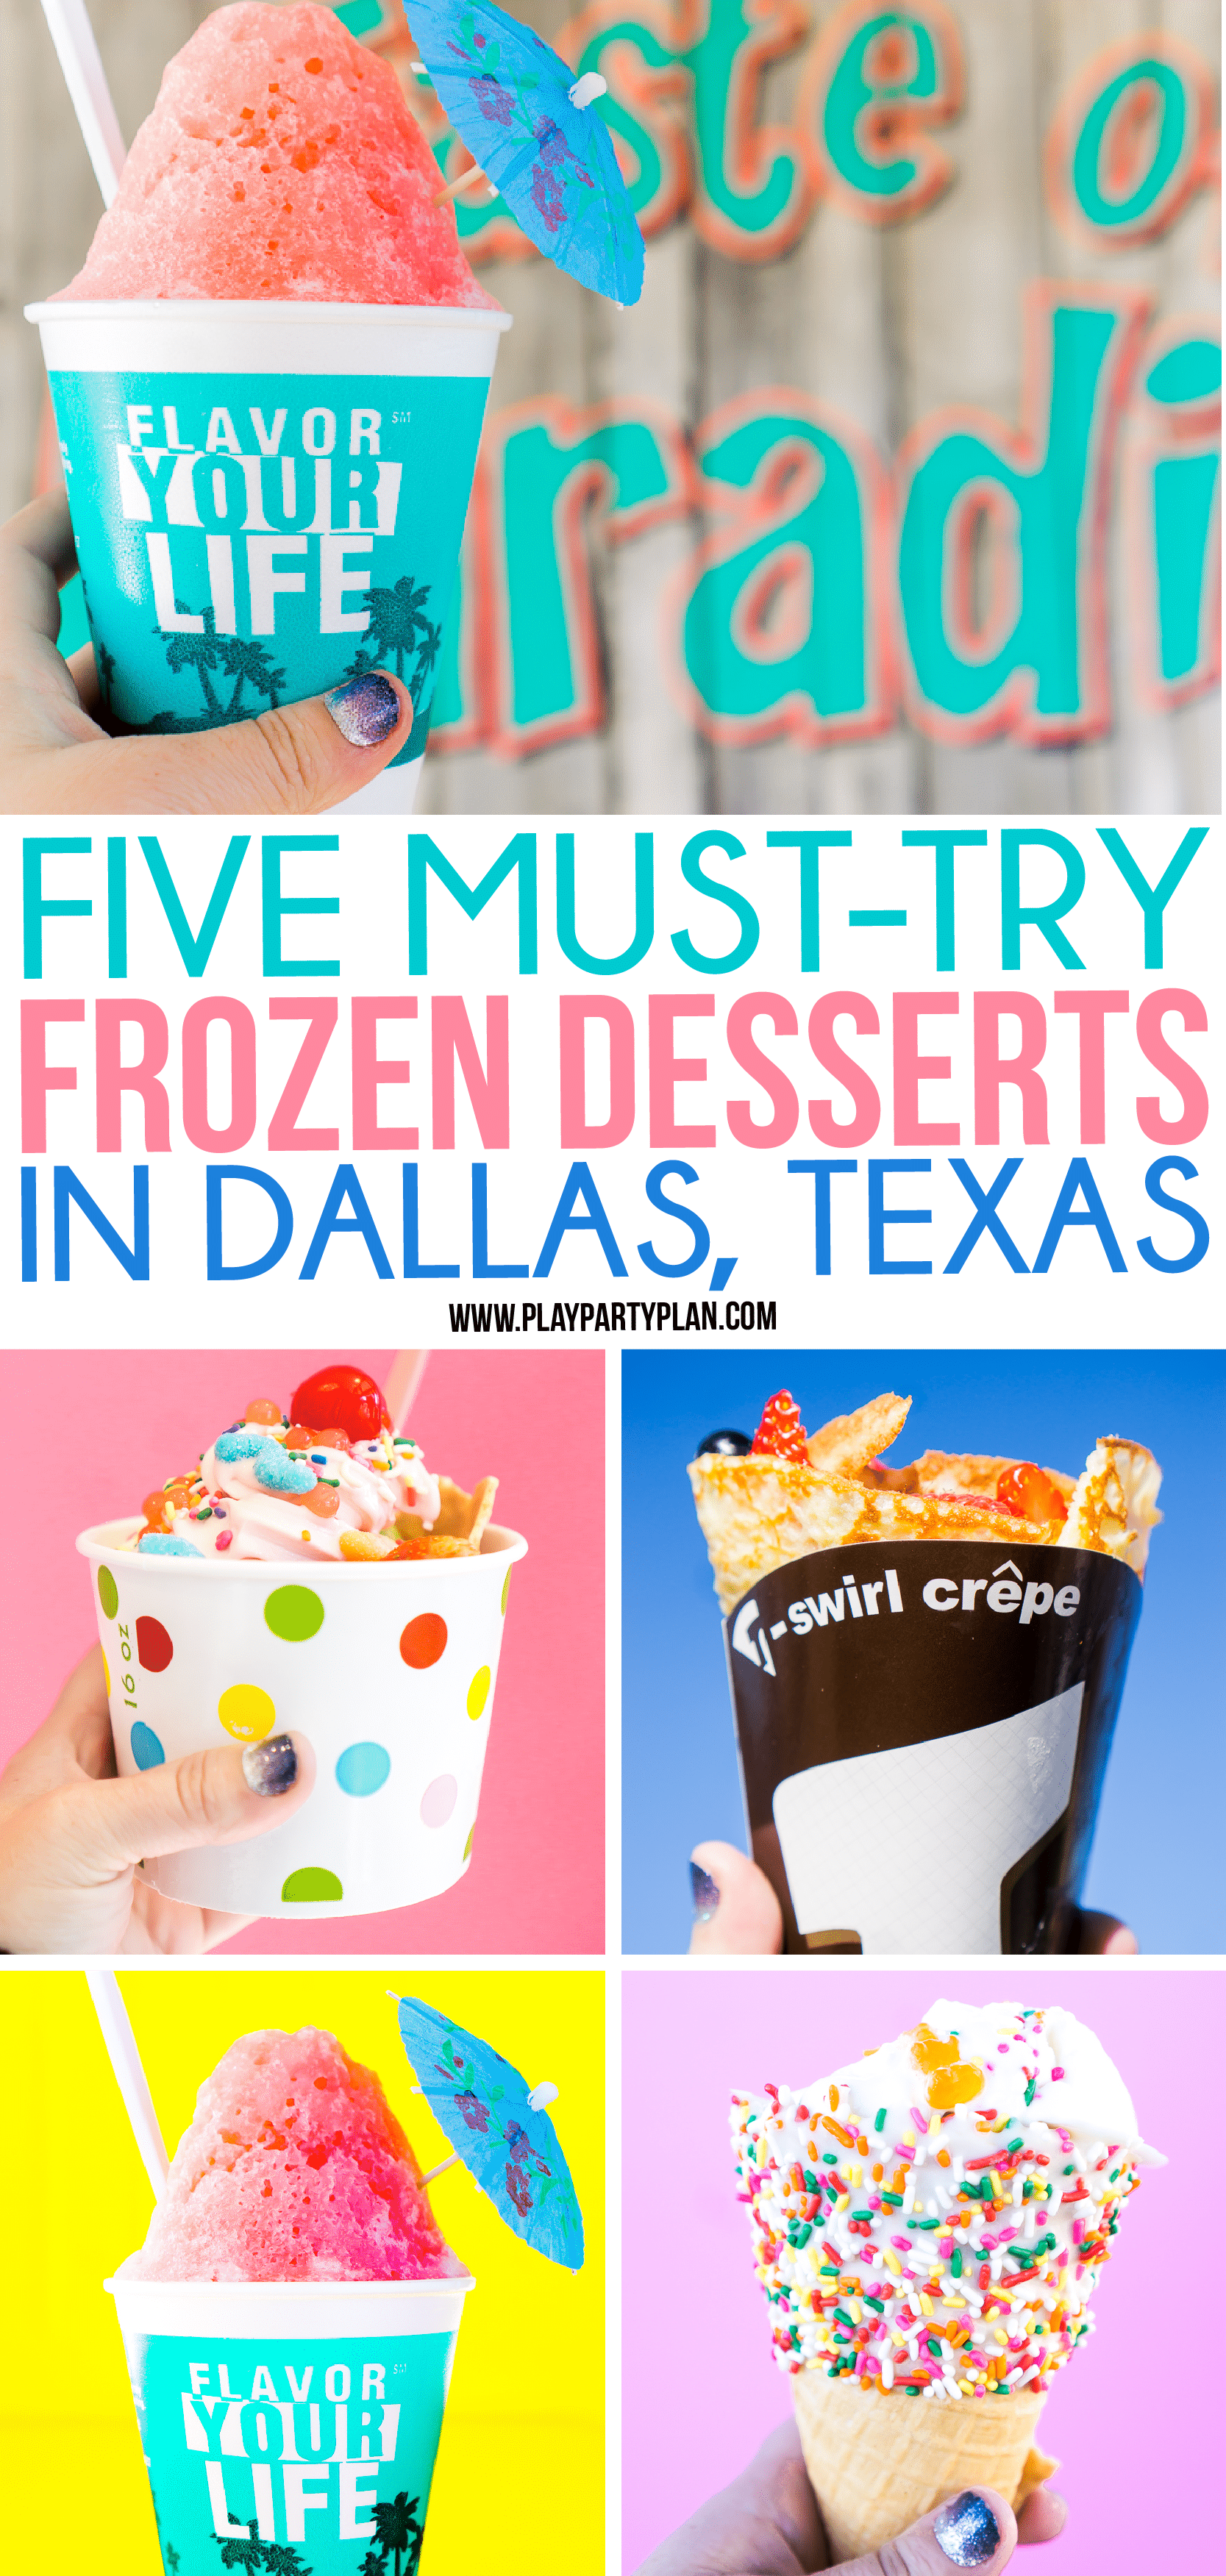 Next time you're in Dallas, Texas make sure you add checking out these dessert restaurants to your list of things to do! And save money on them by using the Groupon+ app to get money back! via @playpartyplan